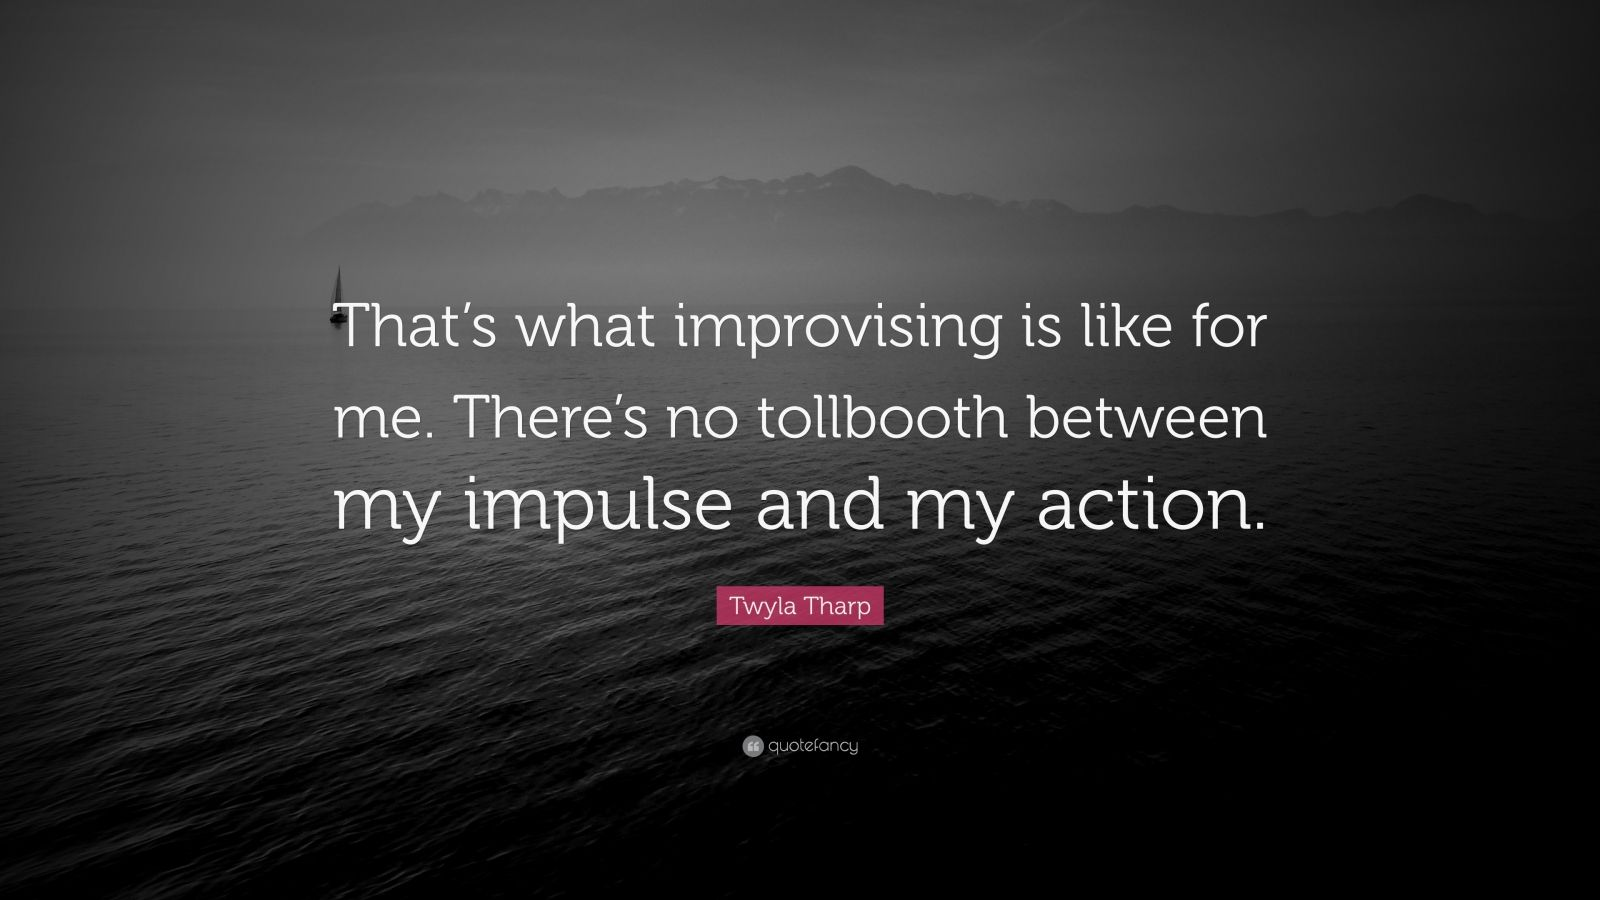 """Twyla Tharp Quote: """"That's what improvising is like for me. There's no tollbooth between my impulse and my action."""""""